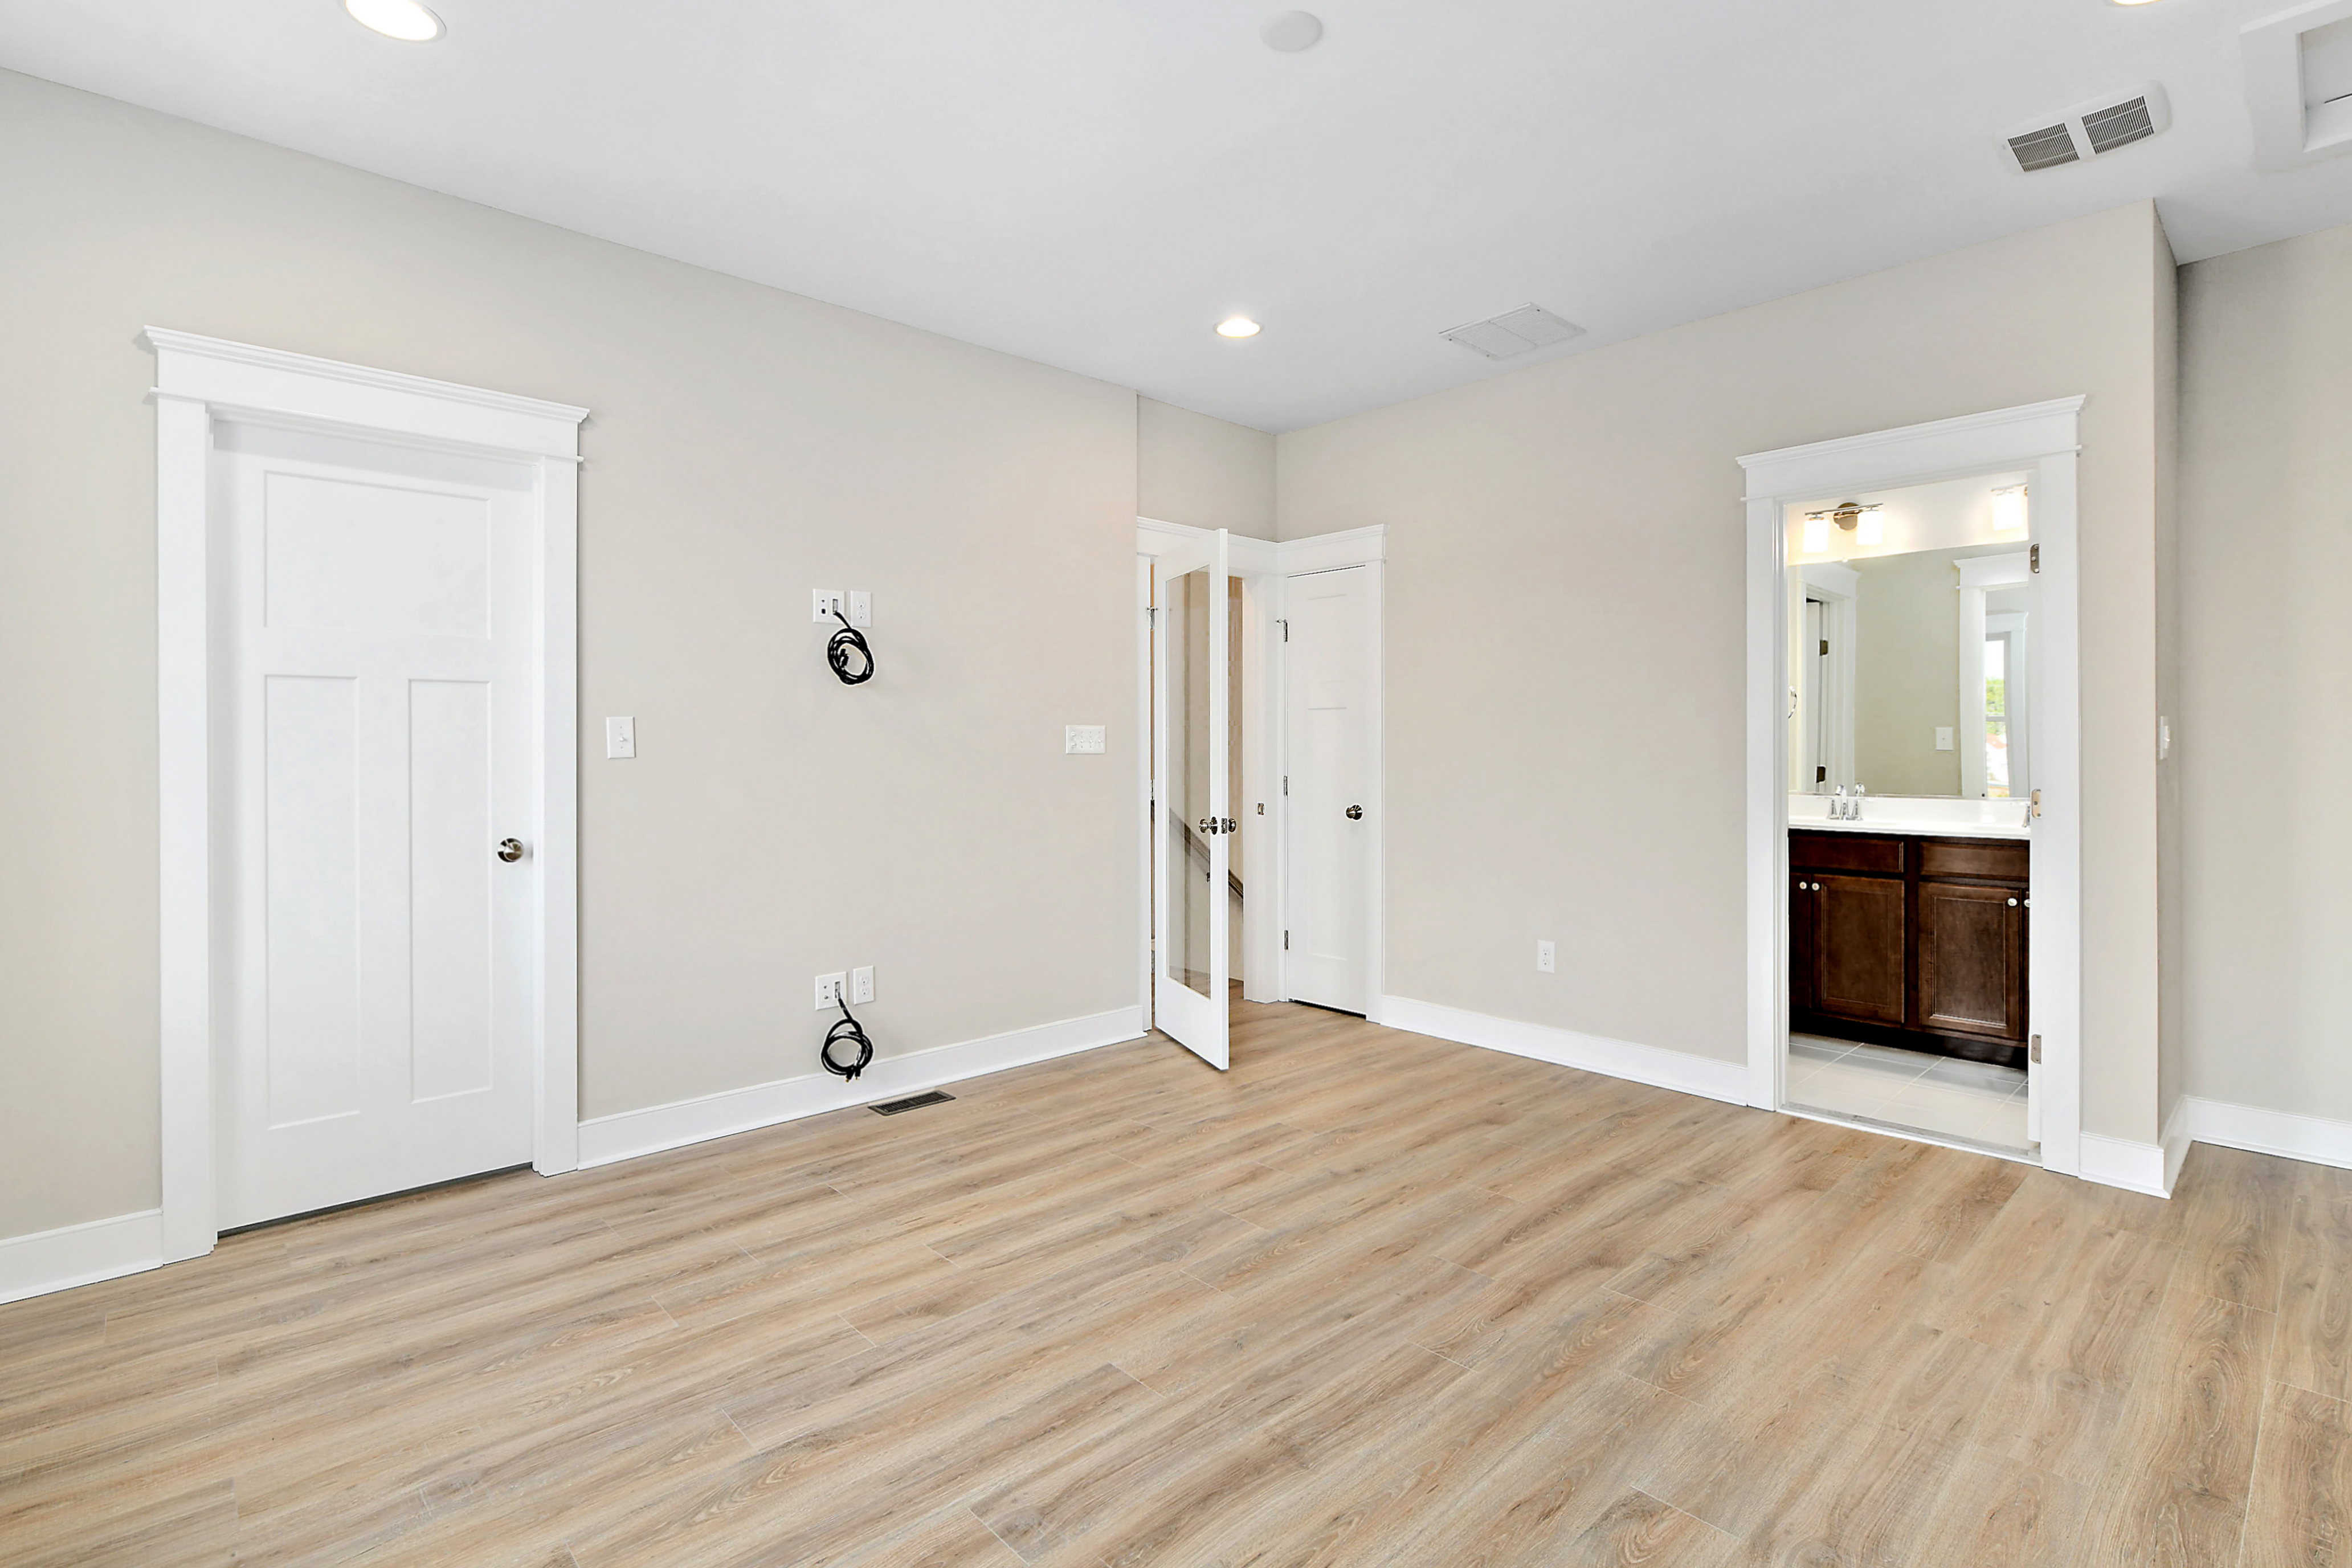 Guest Room Unfurnished with Wood Floors